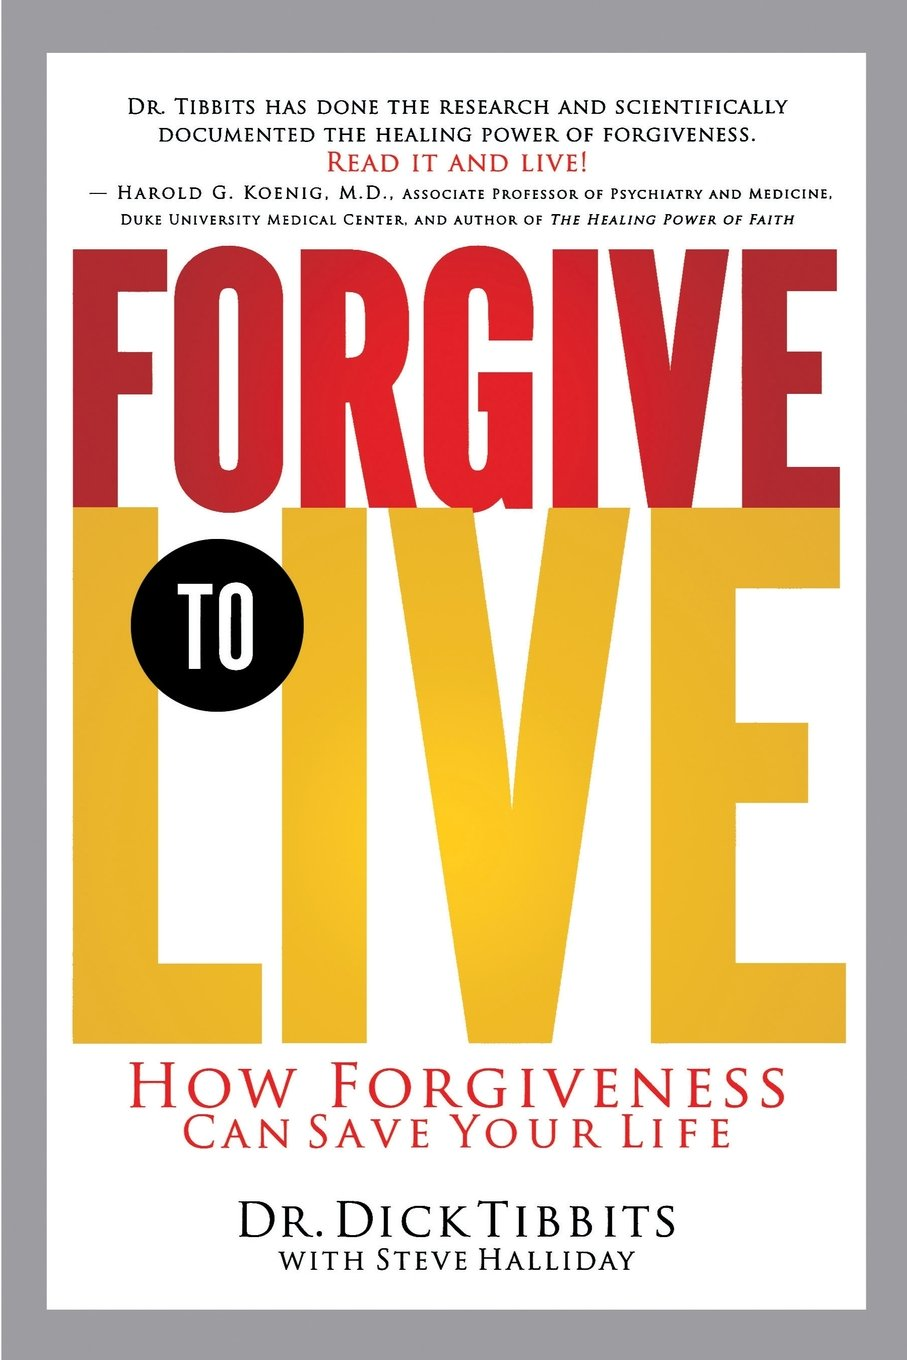 Forgive To Live How Forgiveness Can Save Your Life Dr Dick Tibbits